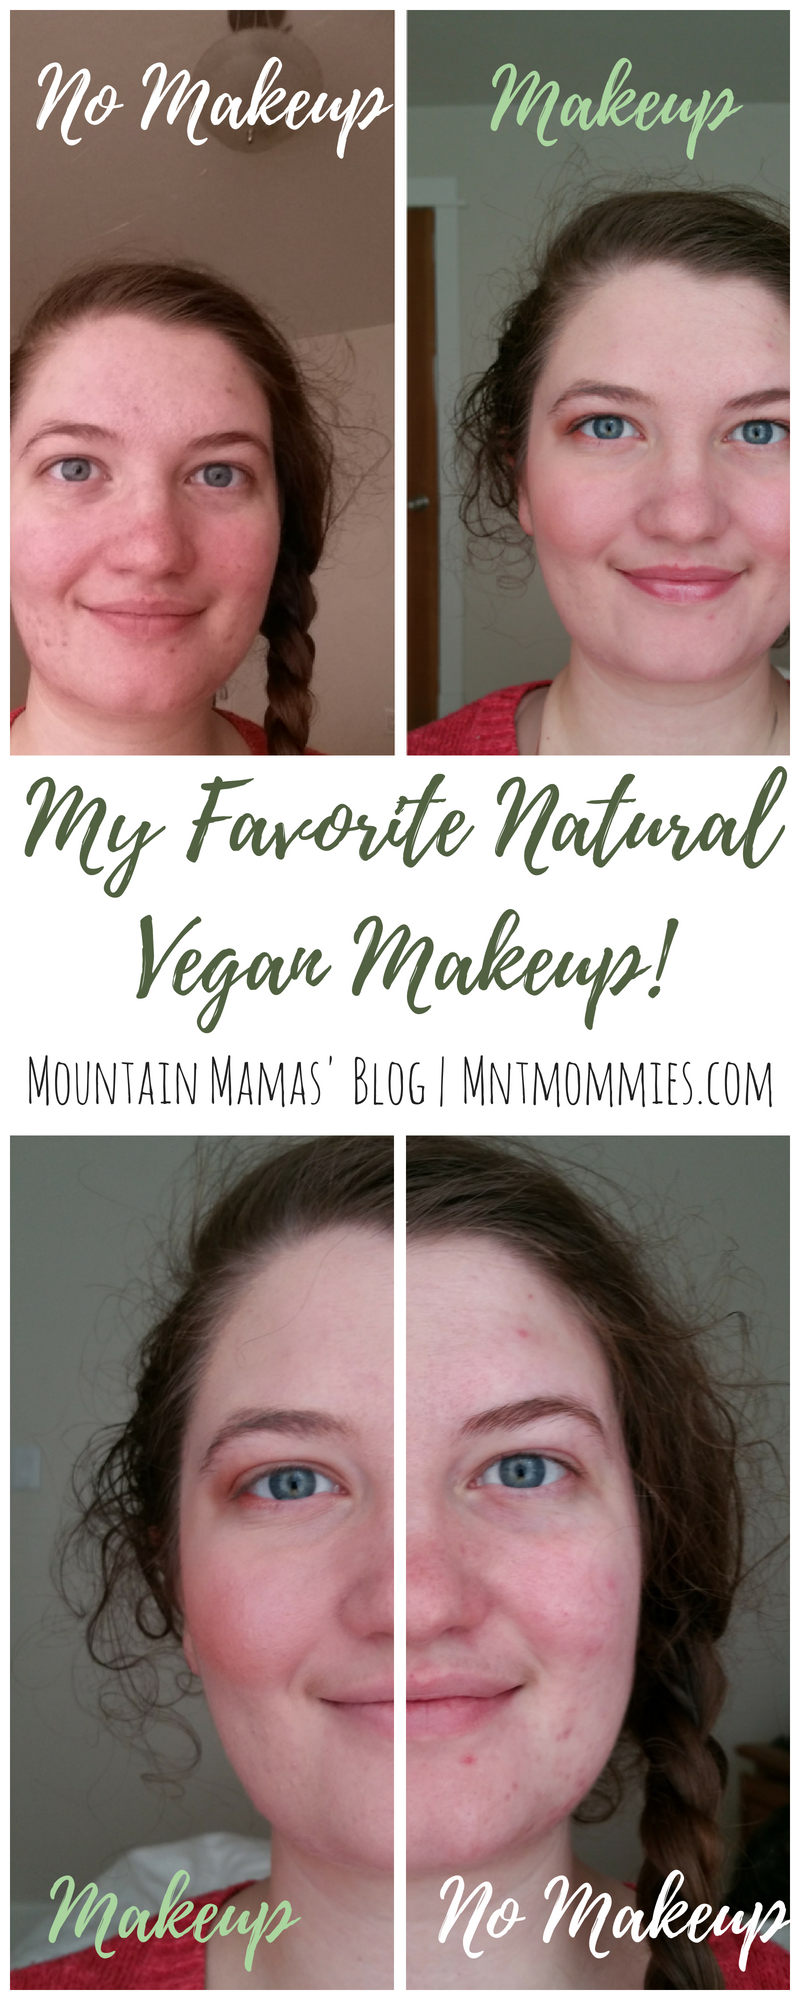 My favorite non-toxic, natural, vegan, makeup. |Mountain Mamas' Blog | mntmommies.com